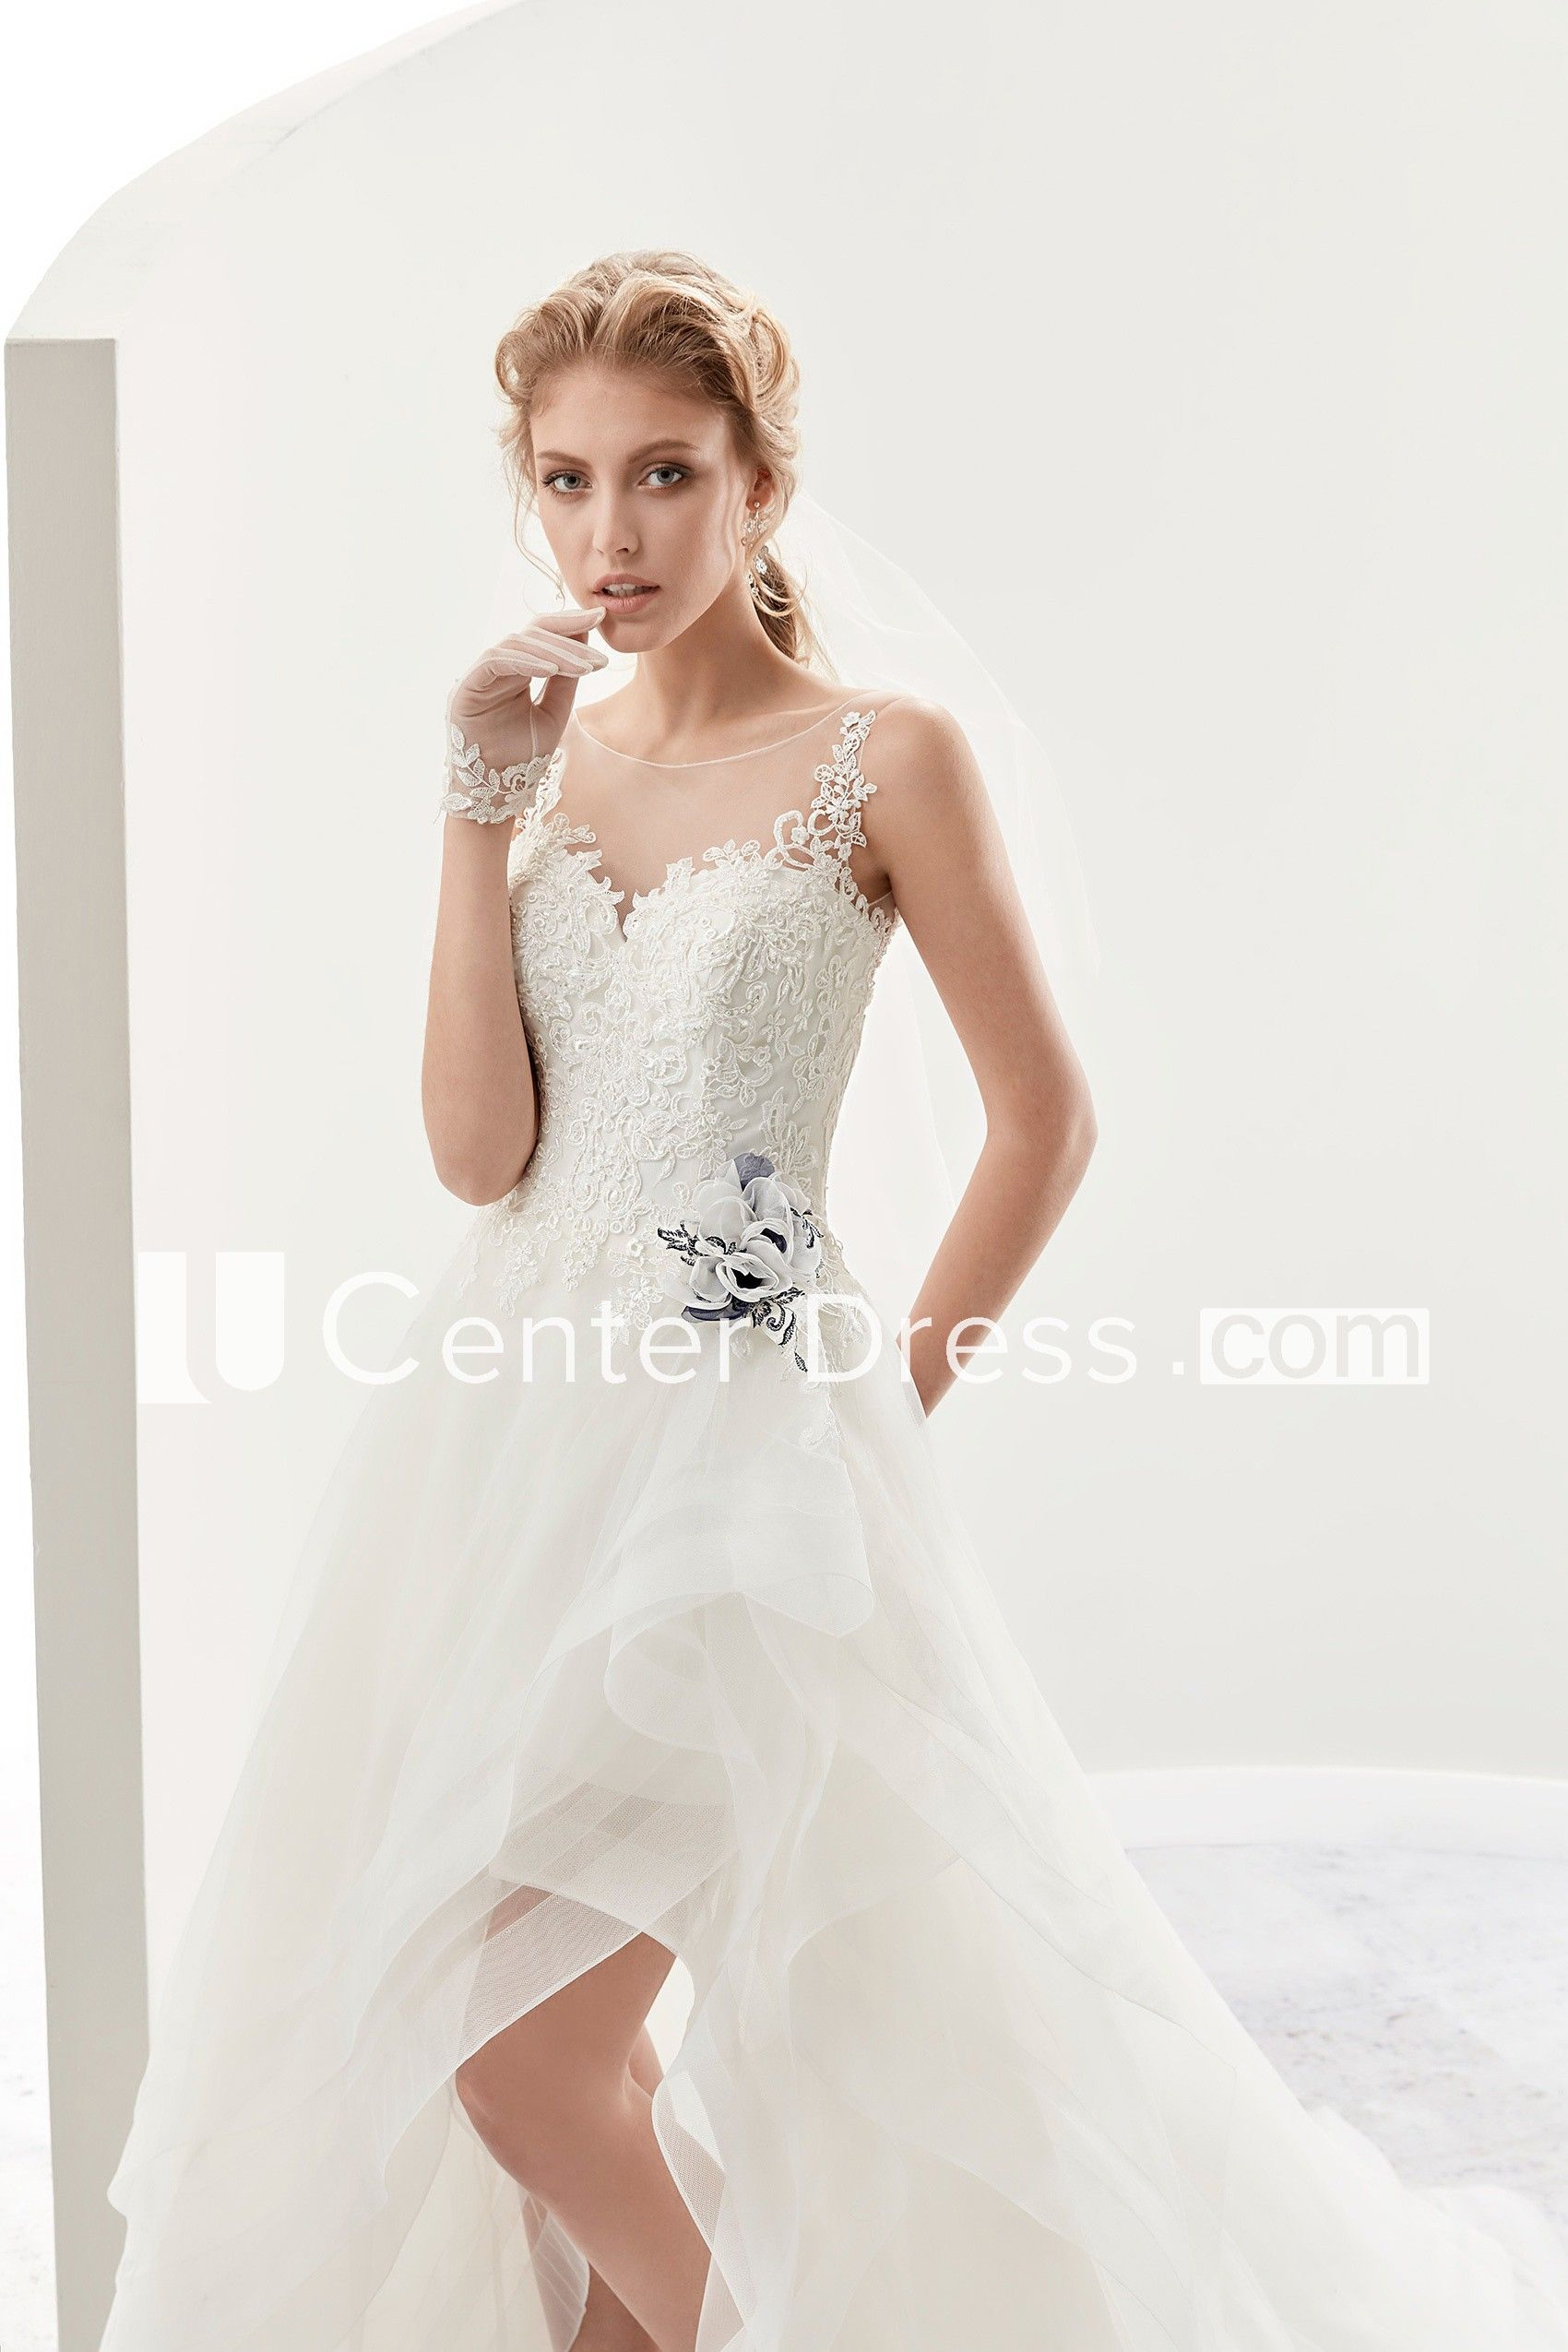 Cap sleeve highlow bridal gown with flower embellishment and